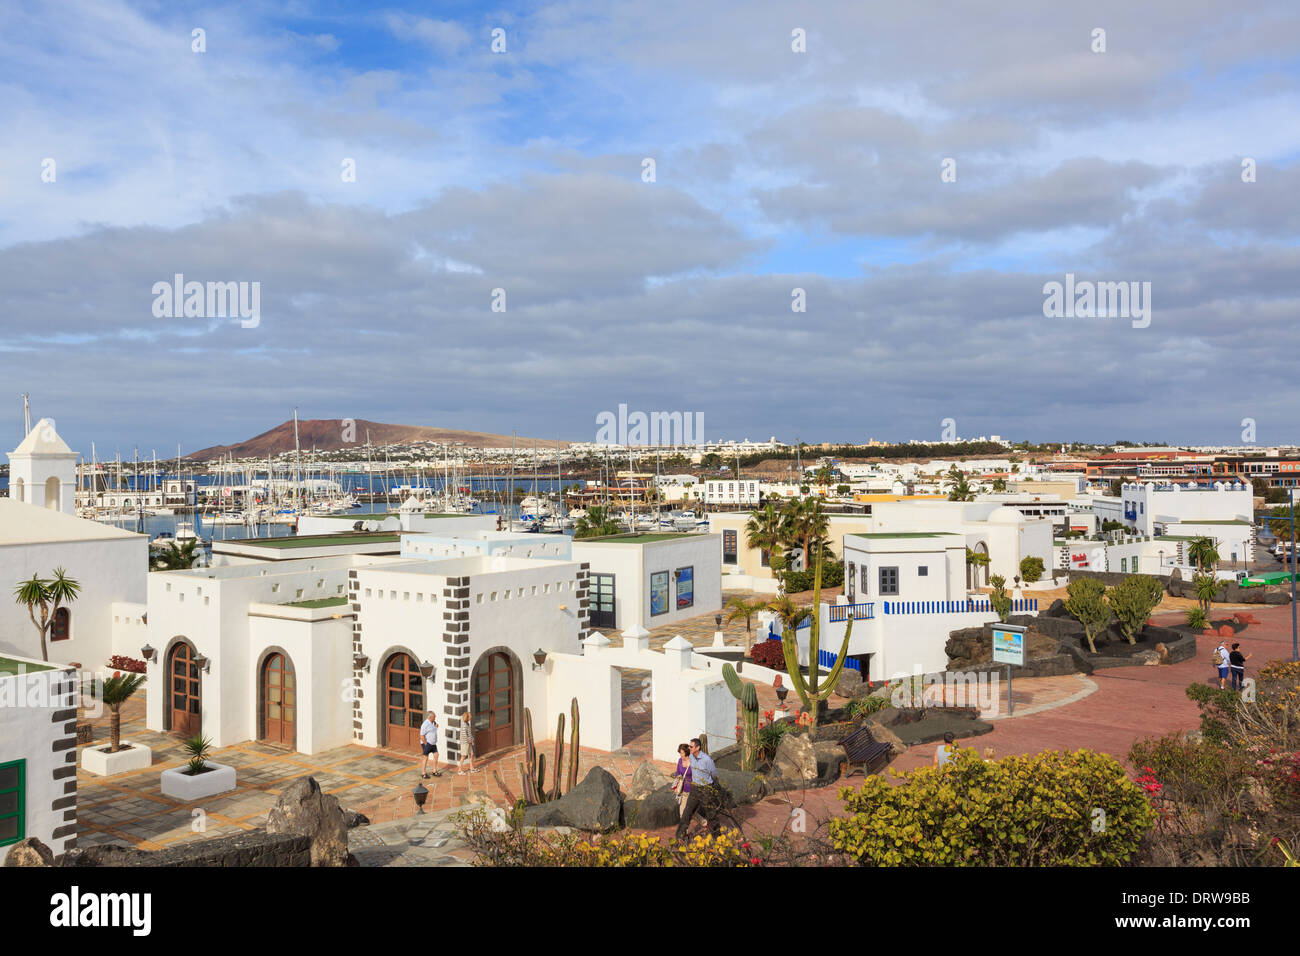 White buildings in new modern upmarket development of Marina Rubicon, Playa Blanca, Lanzarote, Canary Islands, Spain - Stock Image